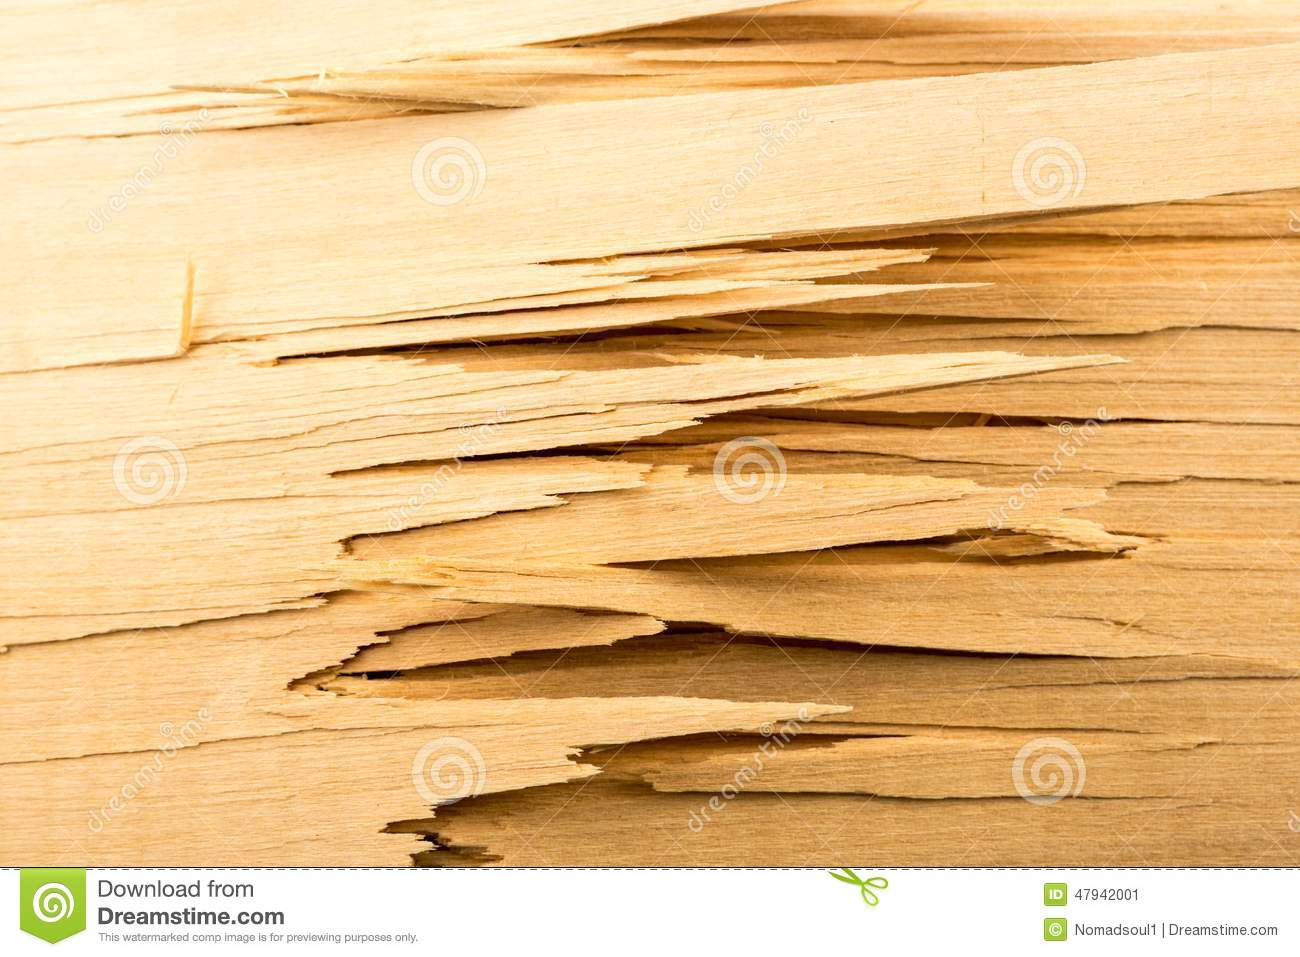 Planches en bois cass es photo stock image 47942001 for Planche bois gris